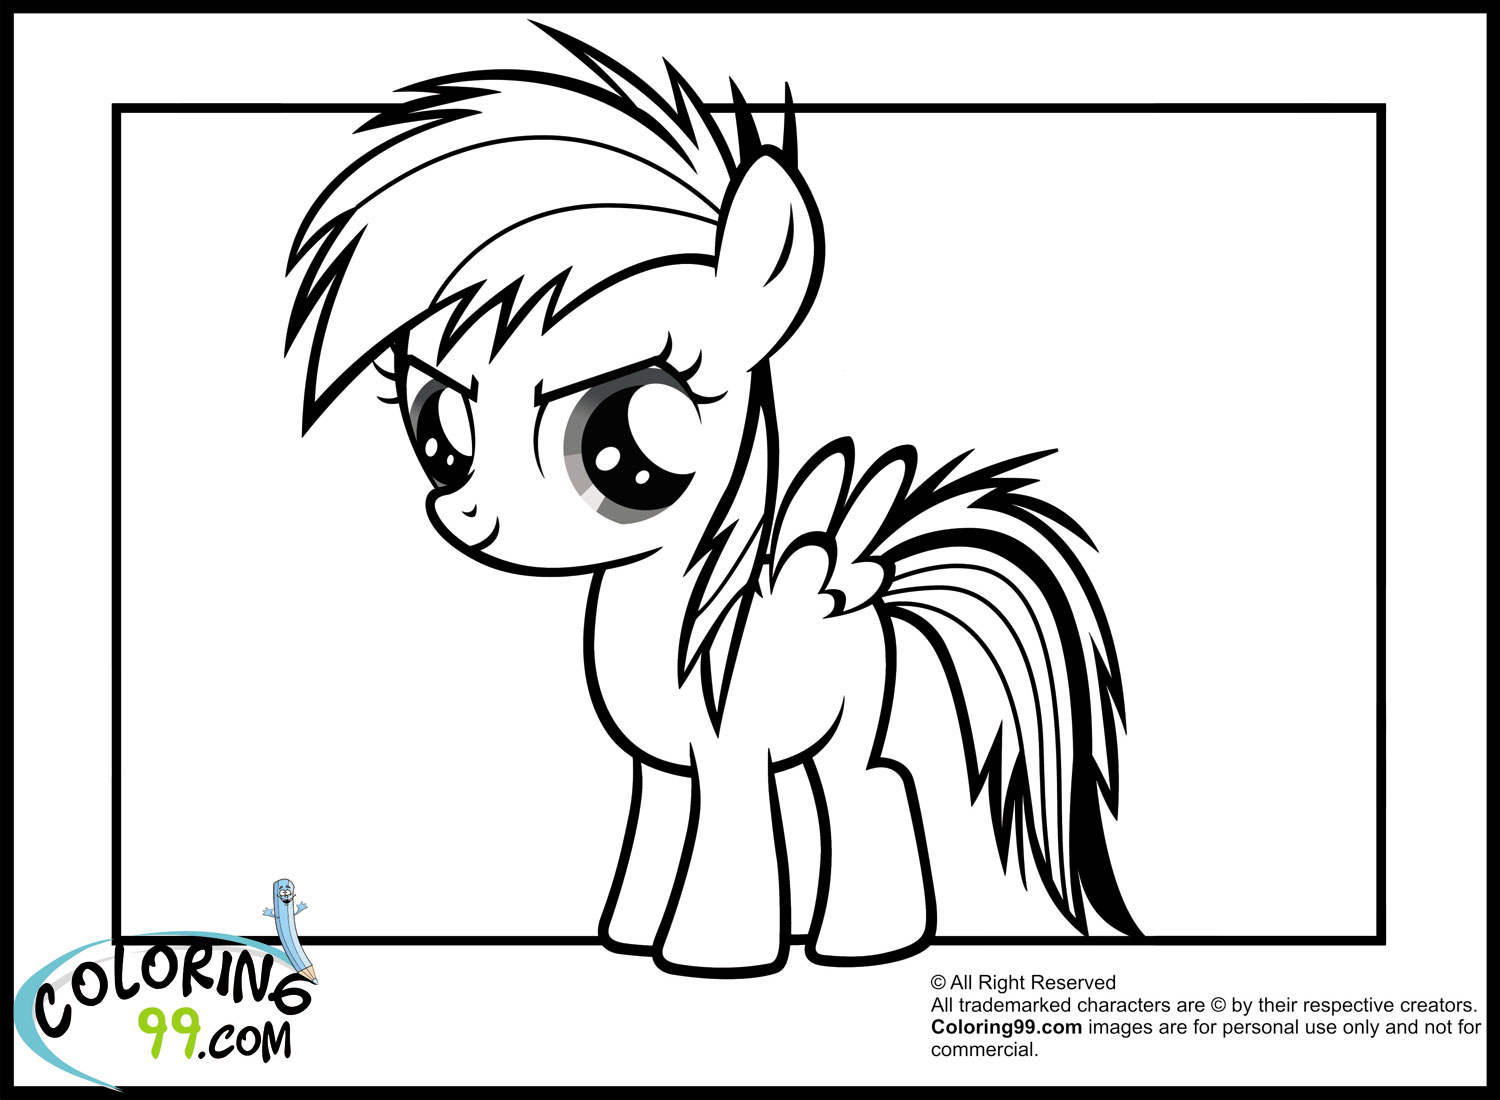 Rainbow Dash Coloring Pages Besides Spike There Is Still Another Main Character In My Little Pony